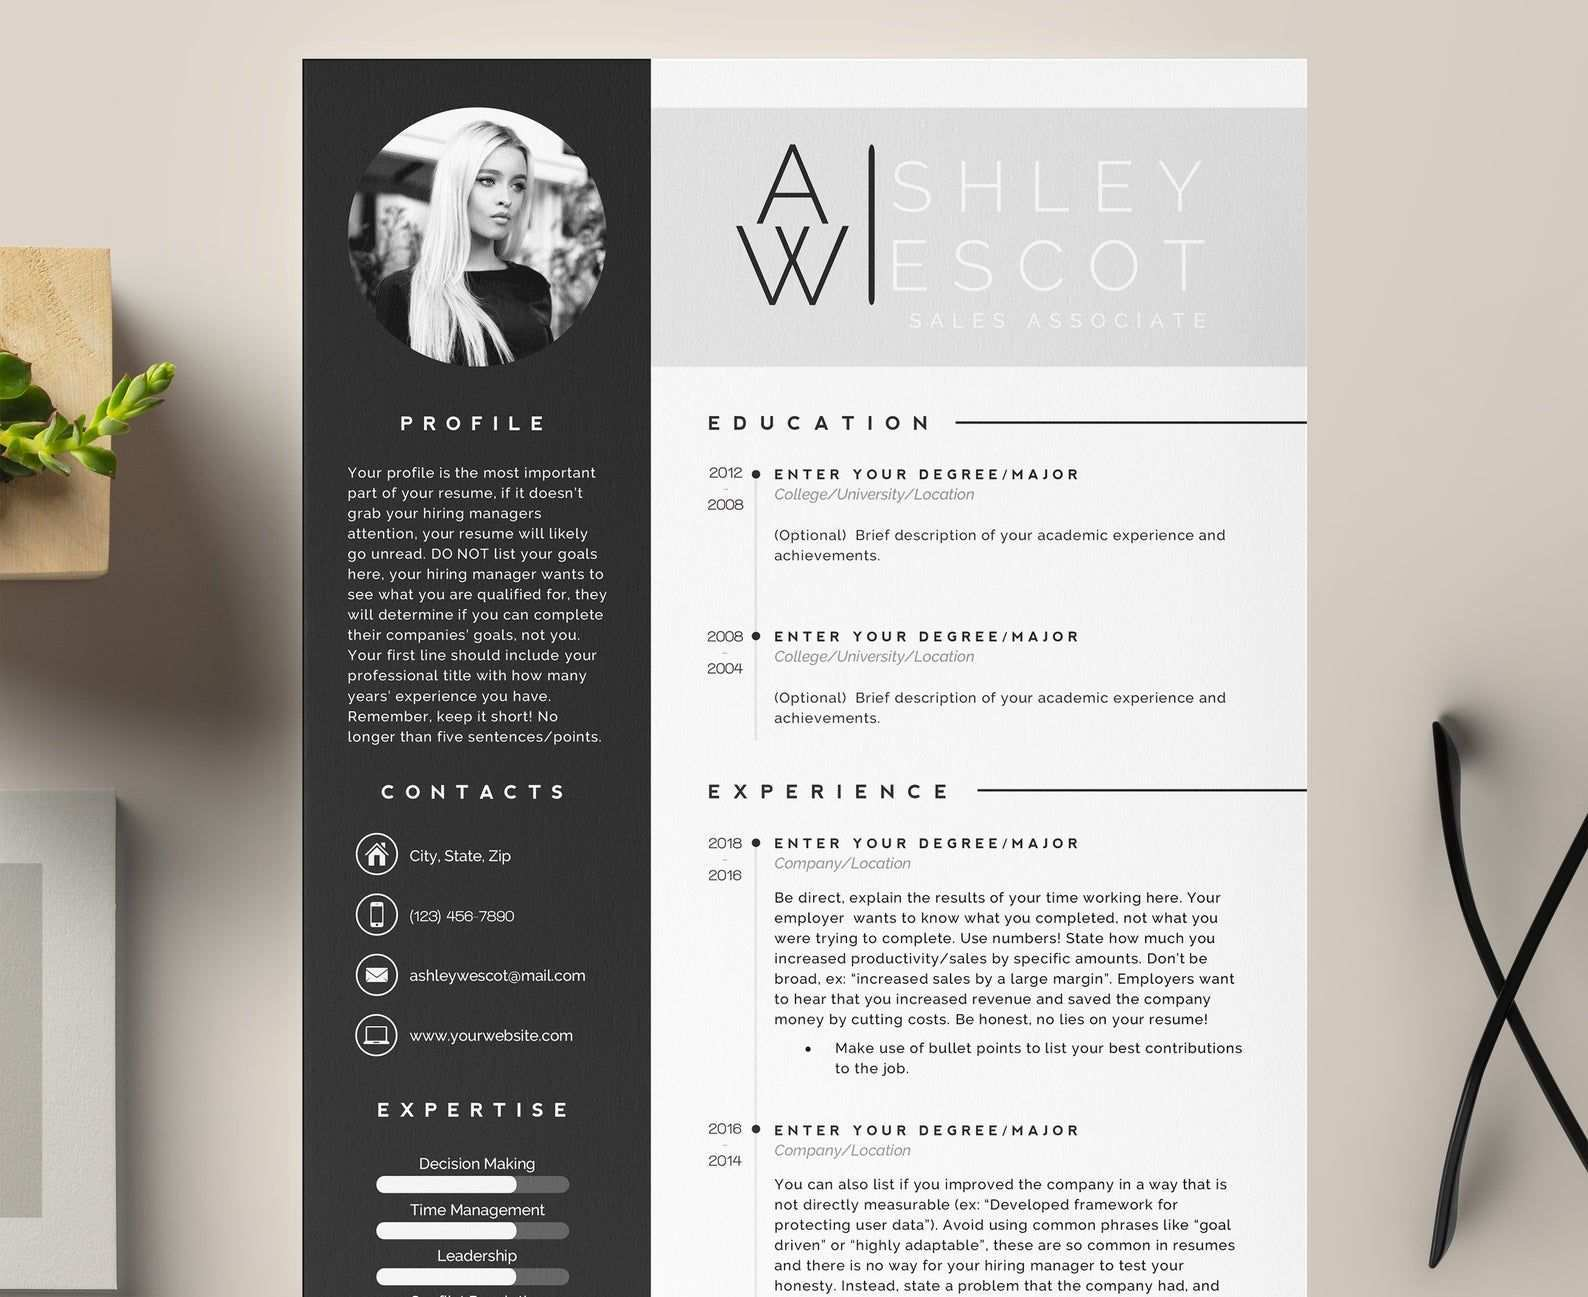 3 Page Resume Template Cover Letter And References Template For Ms Word Mac Printable Modern Resume Professional And Creative Design In 2020 Resume Template Cover Letter Template Lettering